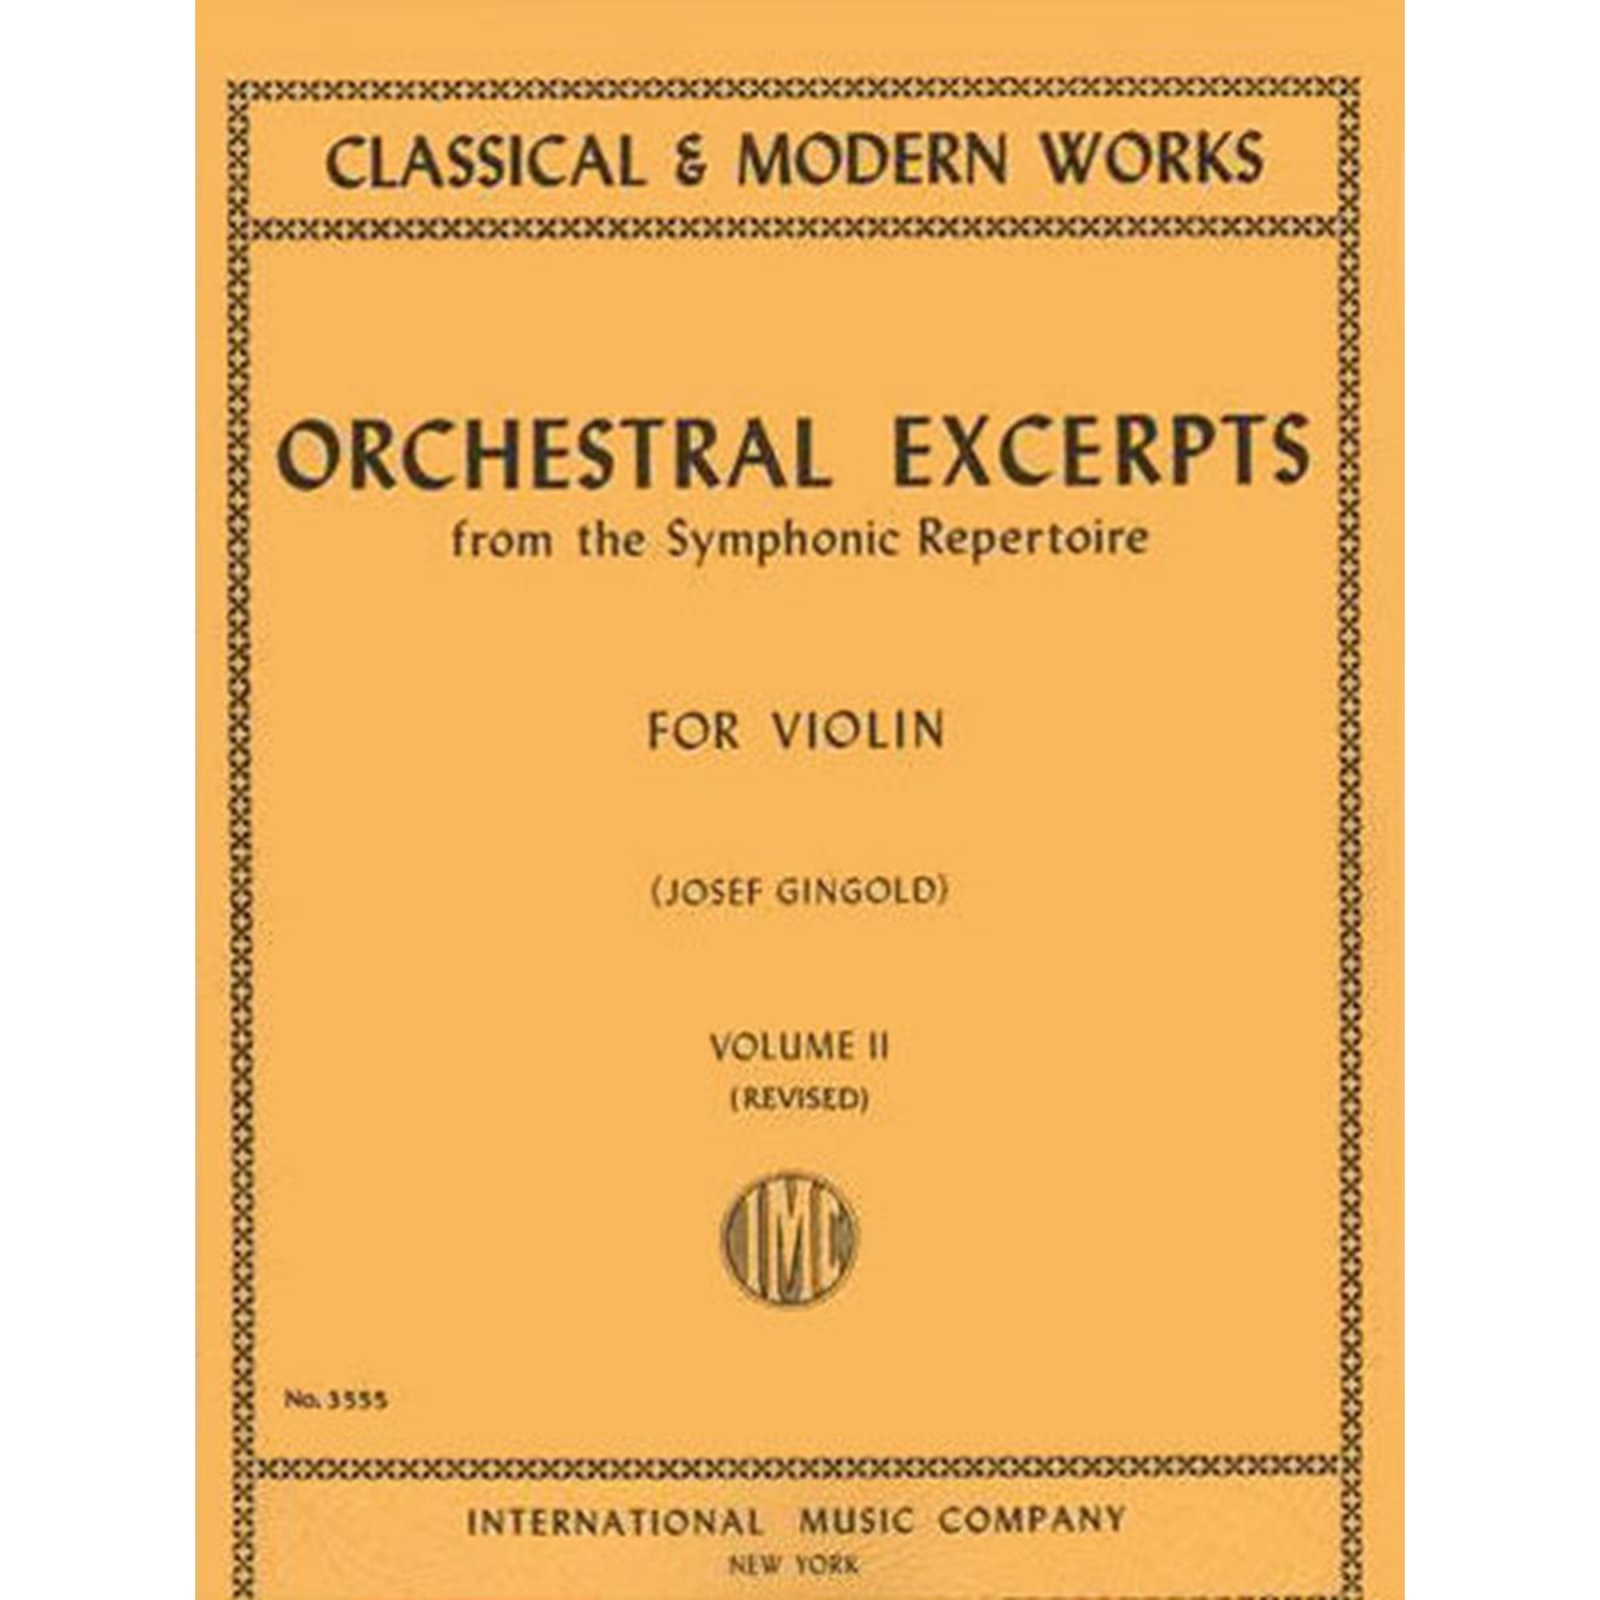 Orchestral Excerpts for Violin, Vol. 2, Ed. Gingold (International)